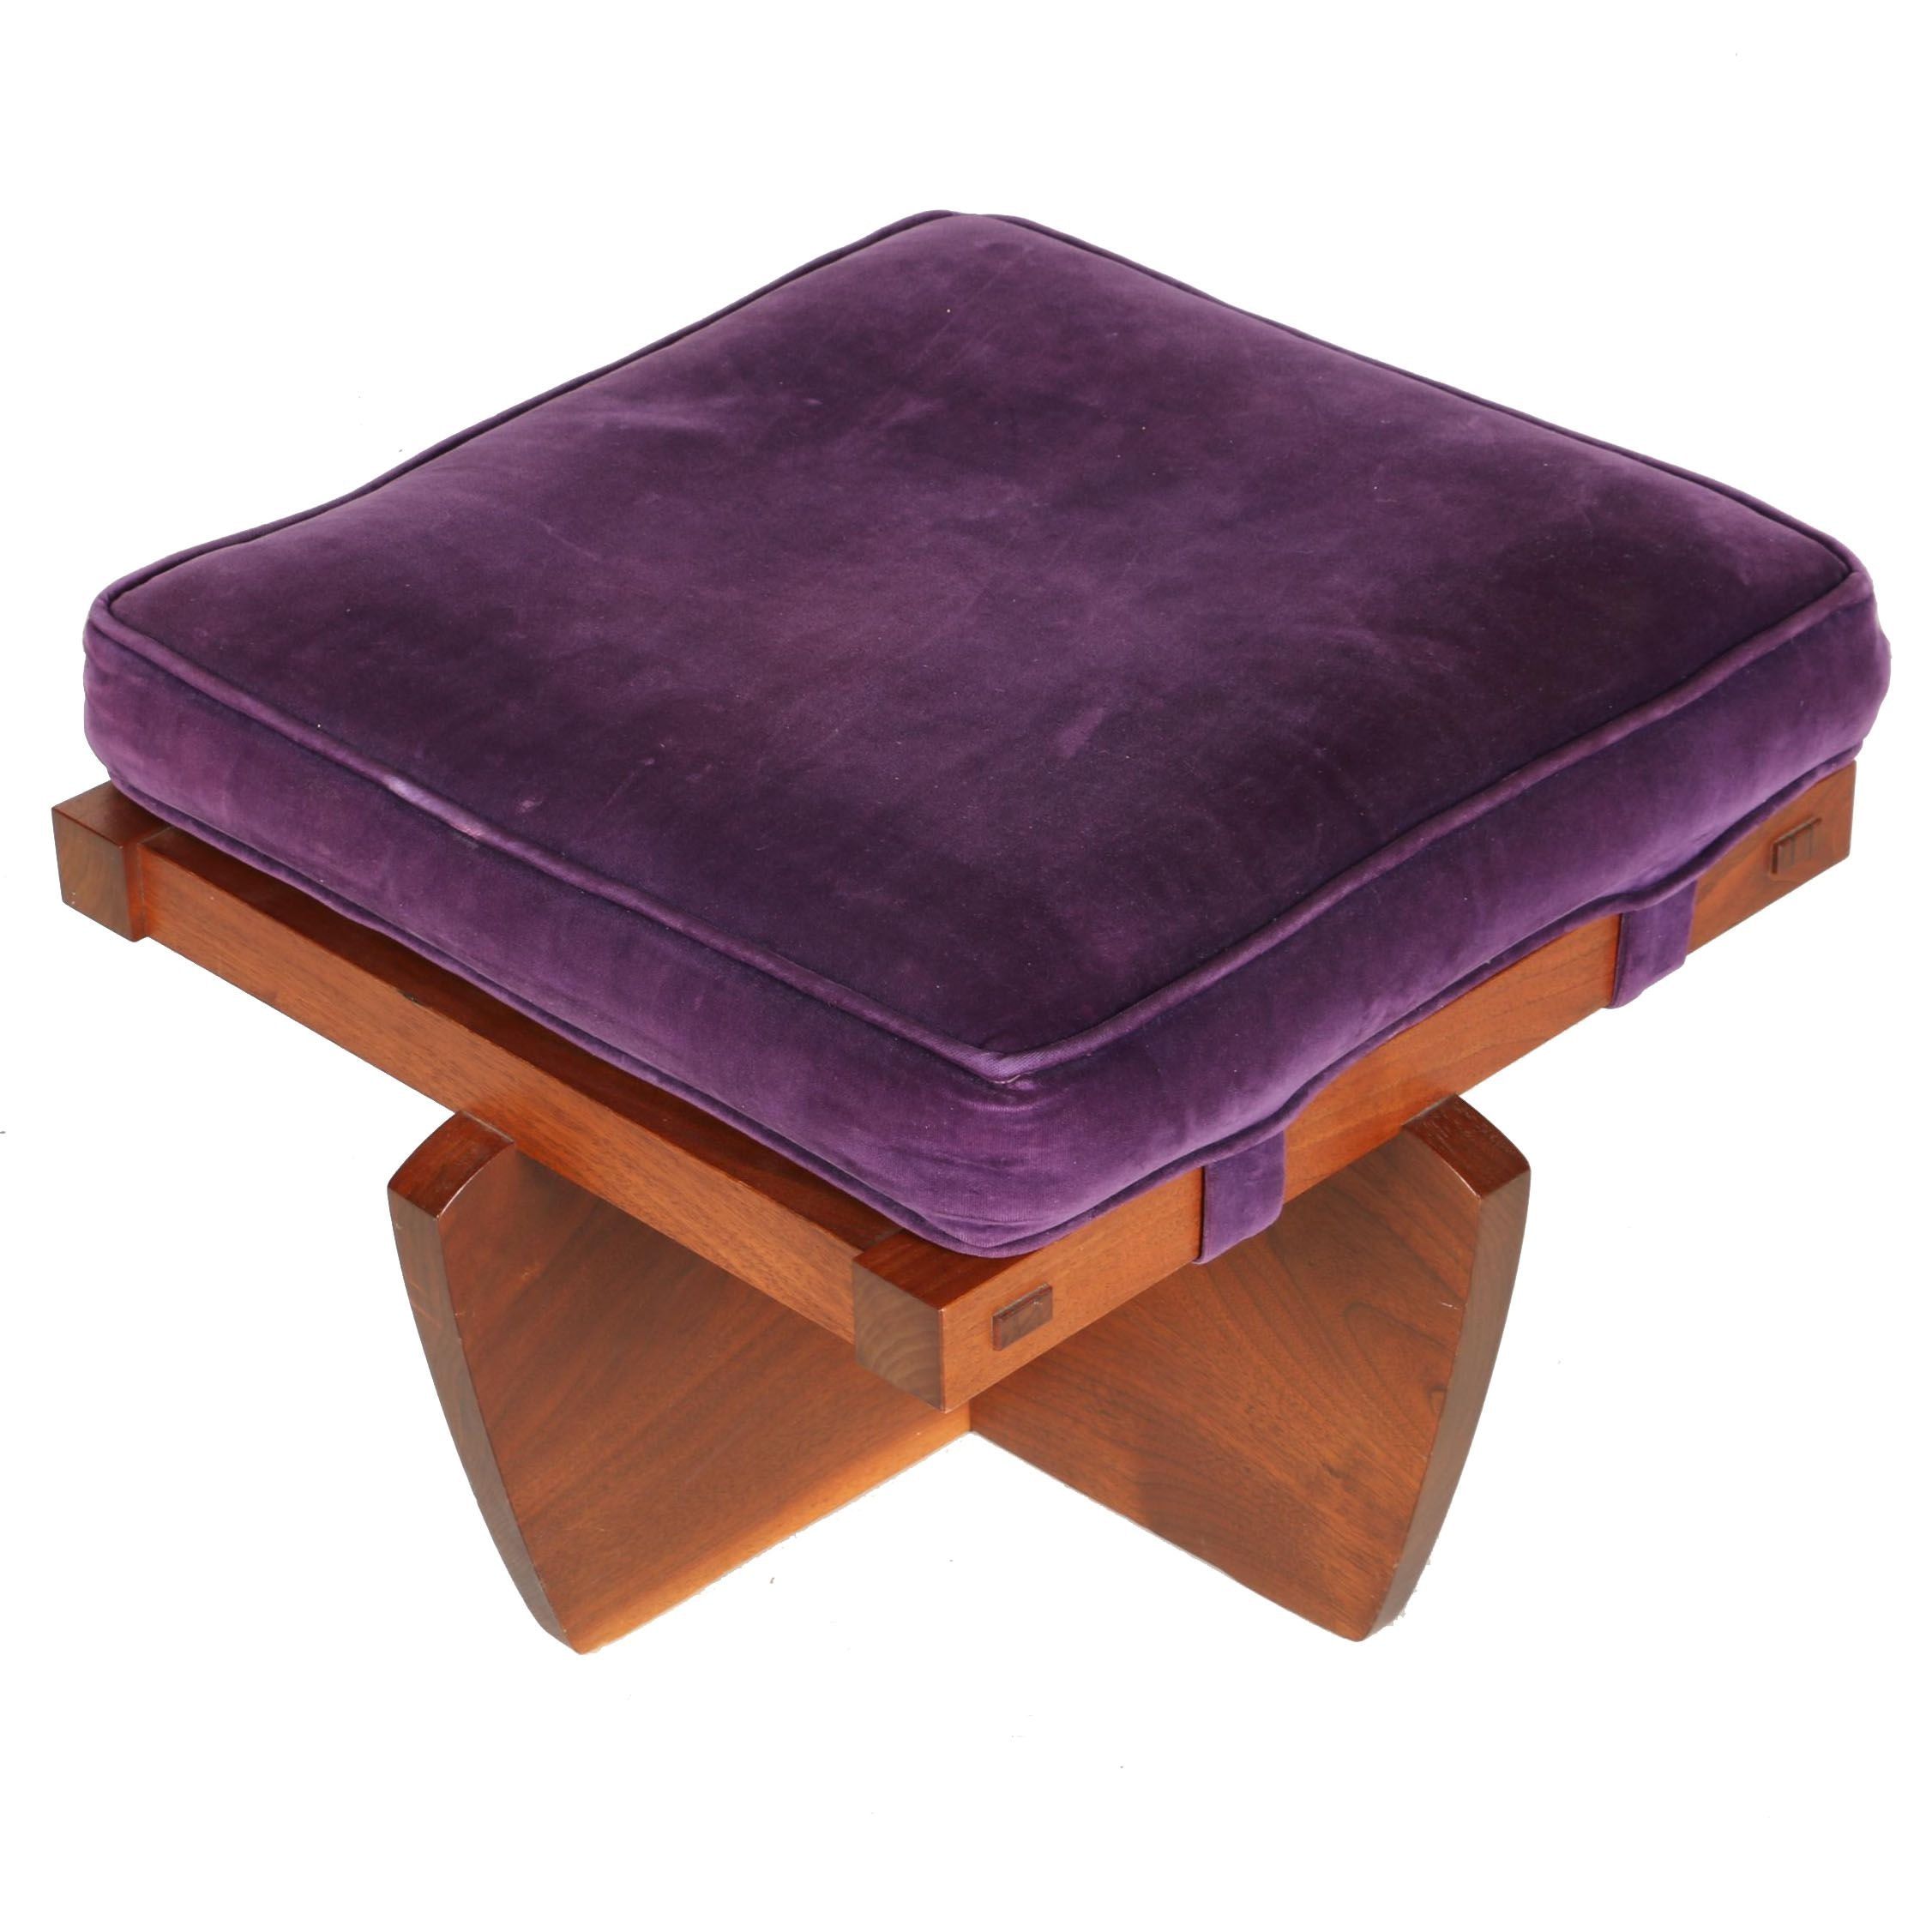 Vintage George Nakashima Ottoman With Provenance